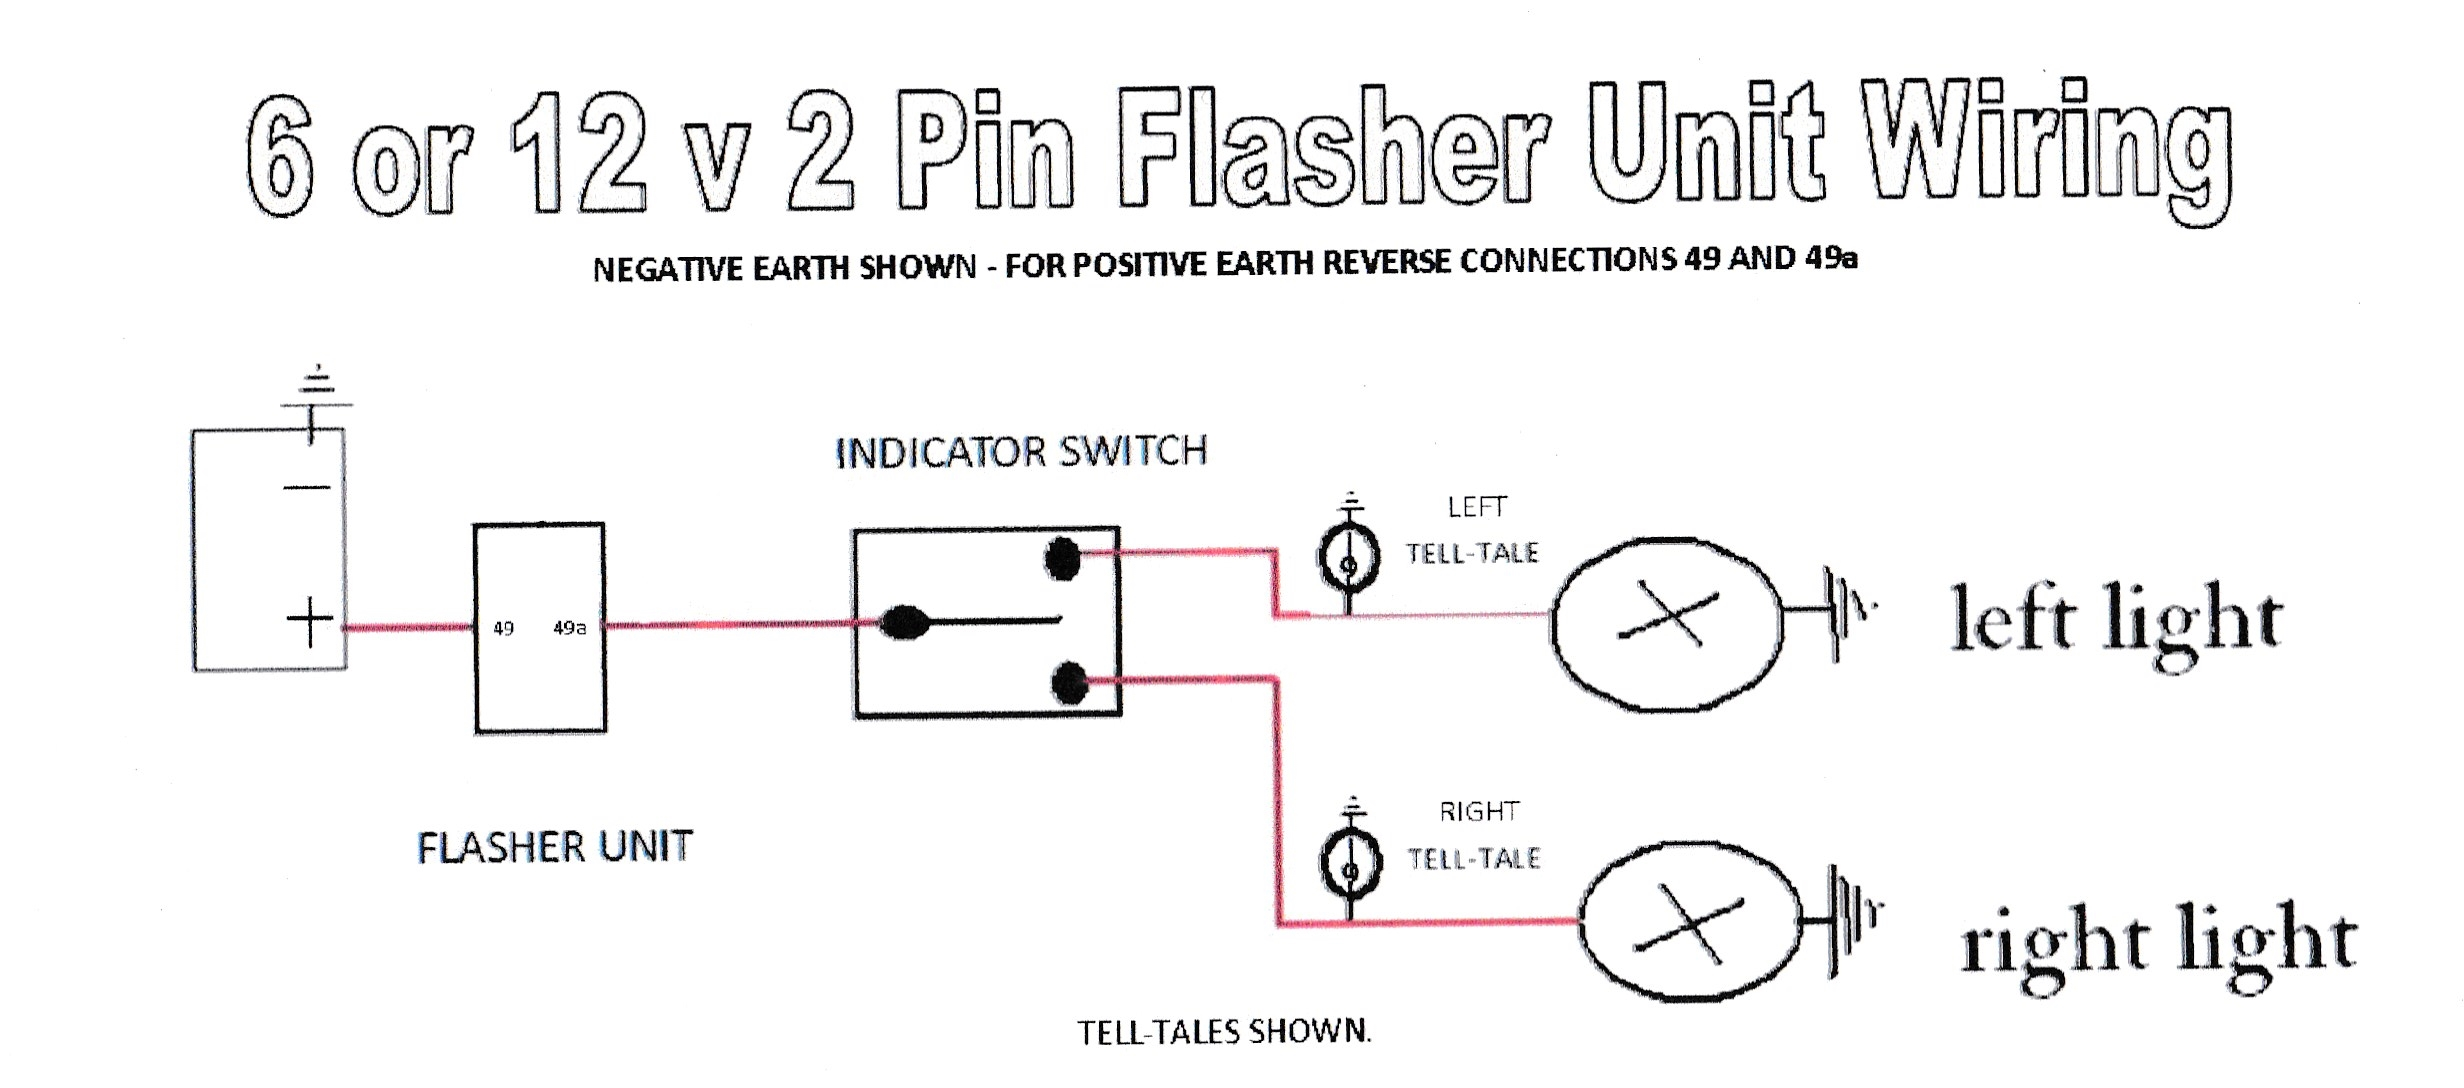 Led flasher wiring diagram free vehicle wiring diagrams wiring diagrams to assist you with connecting up rh dynamoregulatorconversions com led turn signal flasher wiring diagram led flasher unit wiring diagram ccuart Choice Image